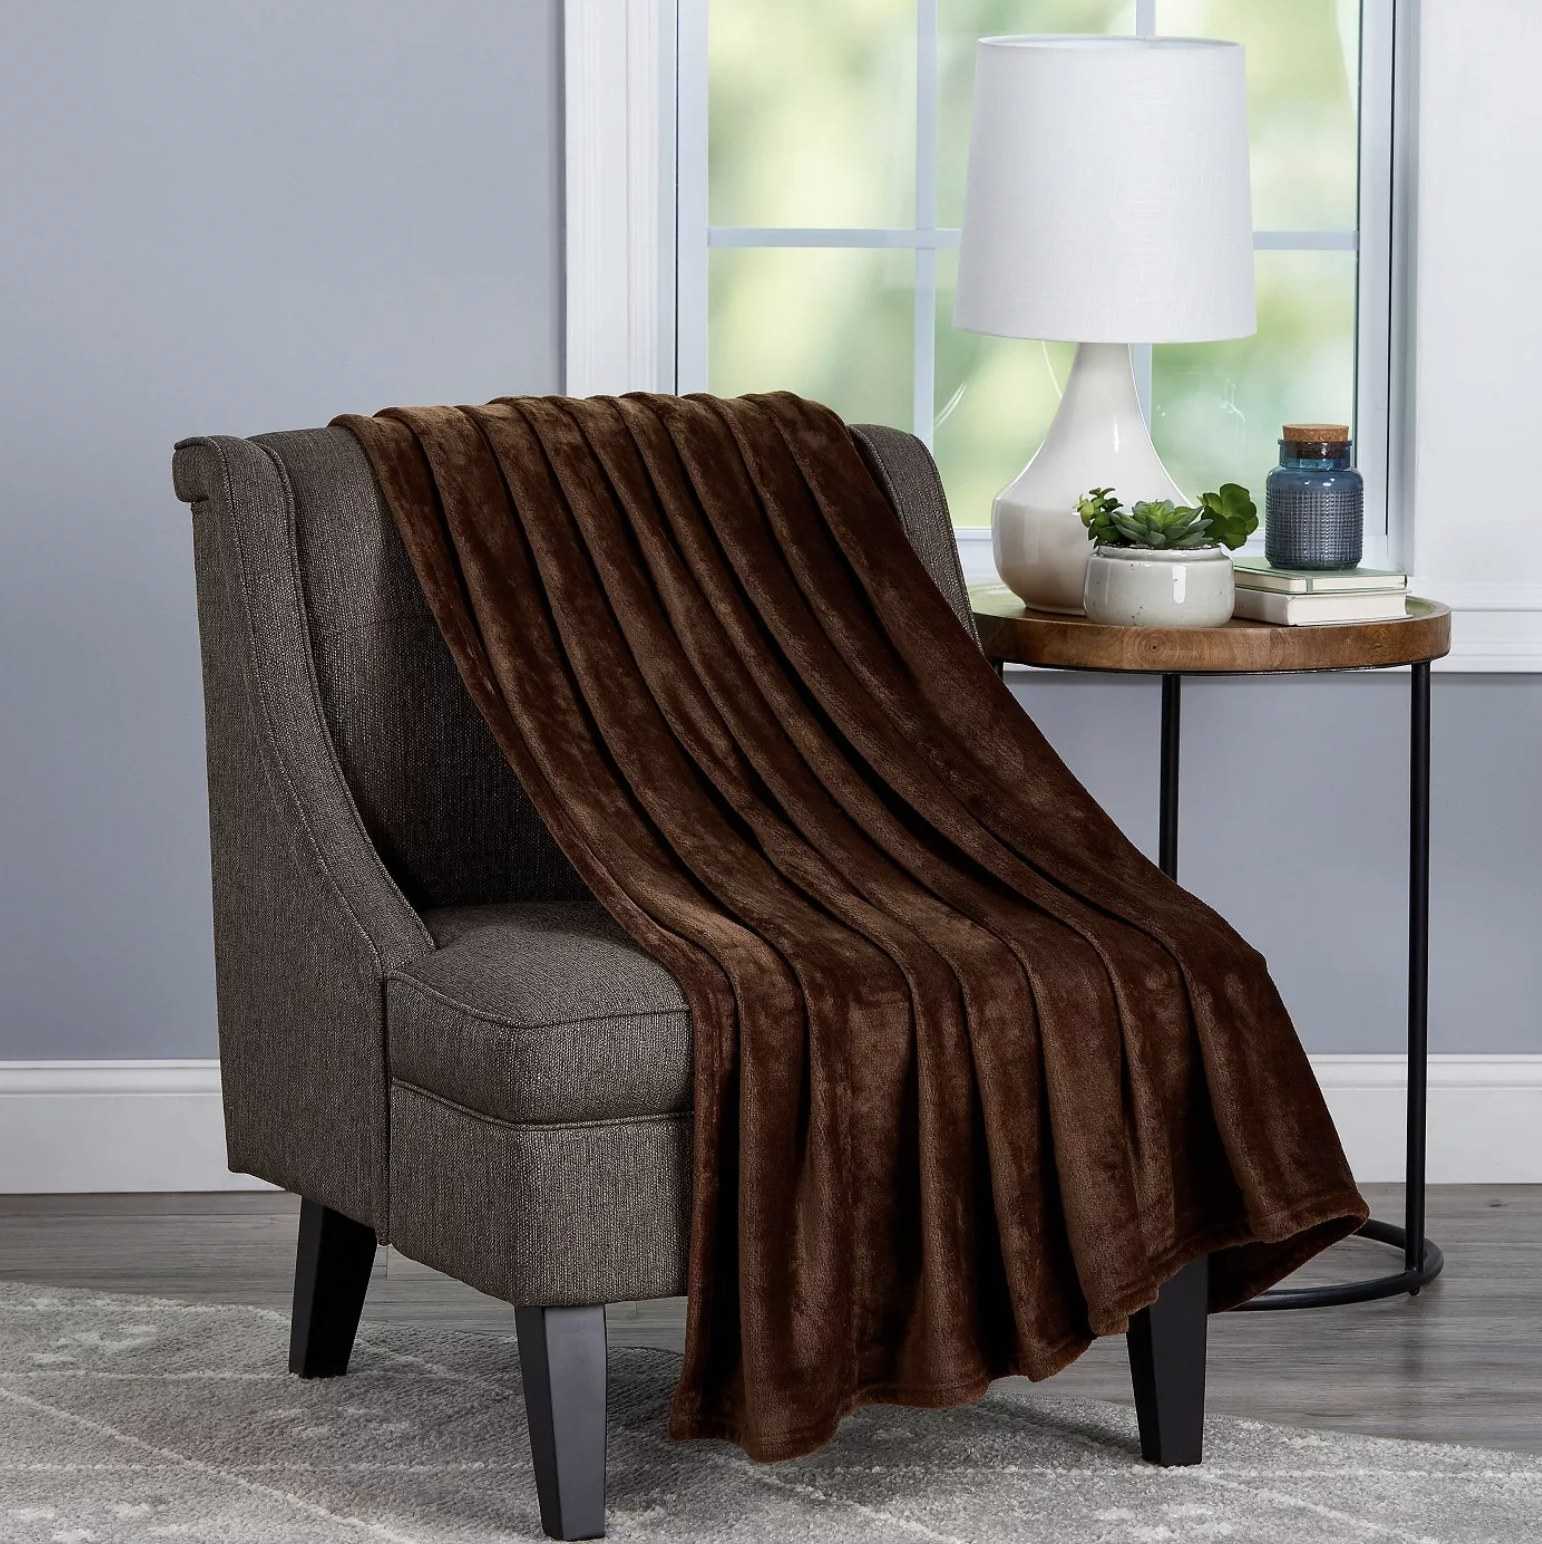 A brown oversized microfiber throw blanket is placed on top of a grey chair